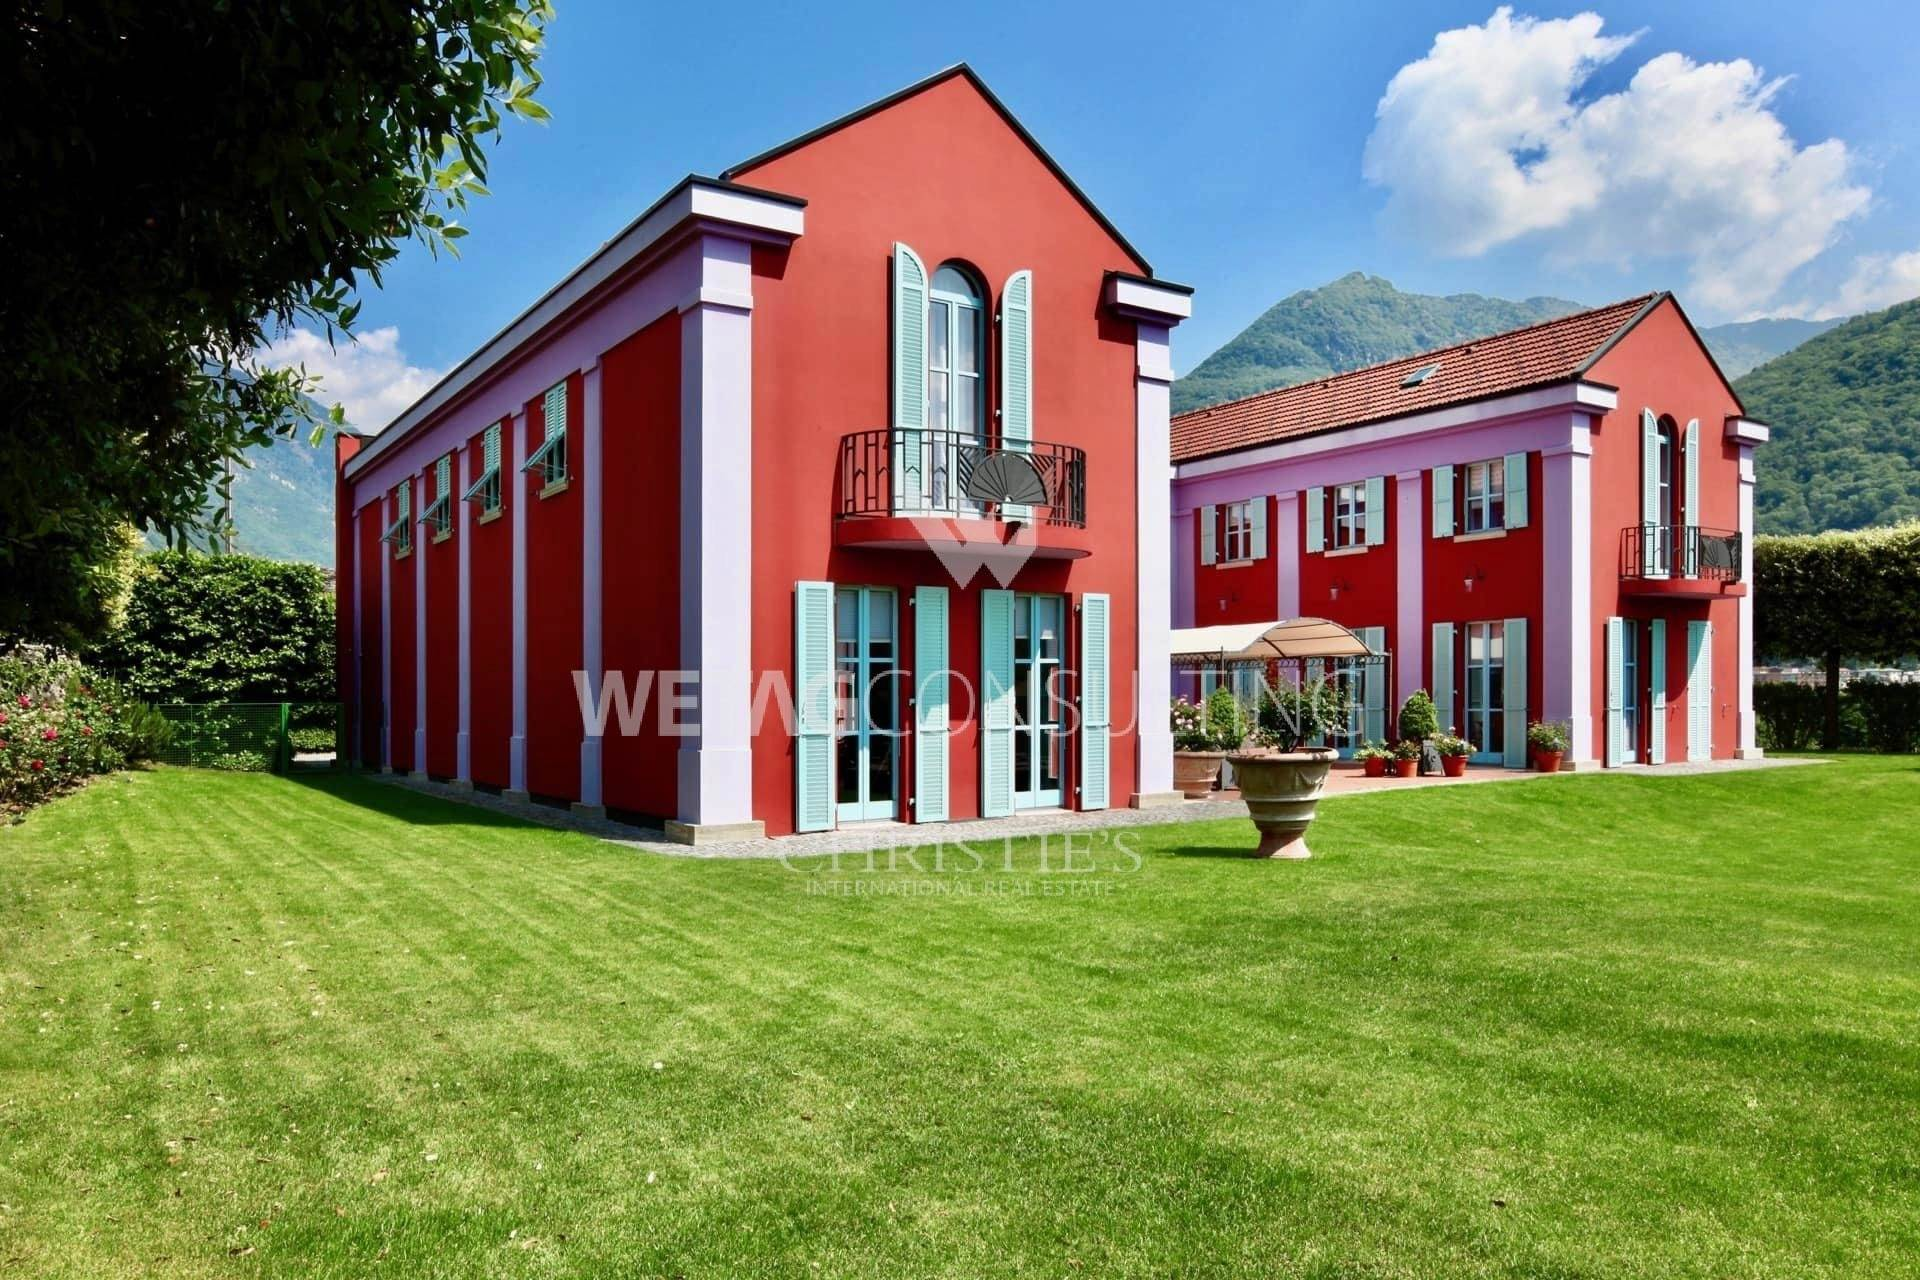 Villa/Townhouse for Sale at Stately villa for sale in Bellinzona overlooking nature Bellinzona, Ticino,6500 Switzerland